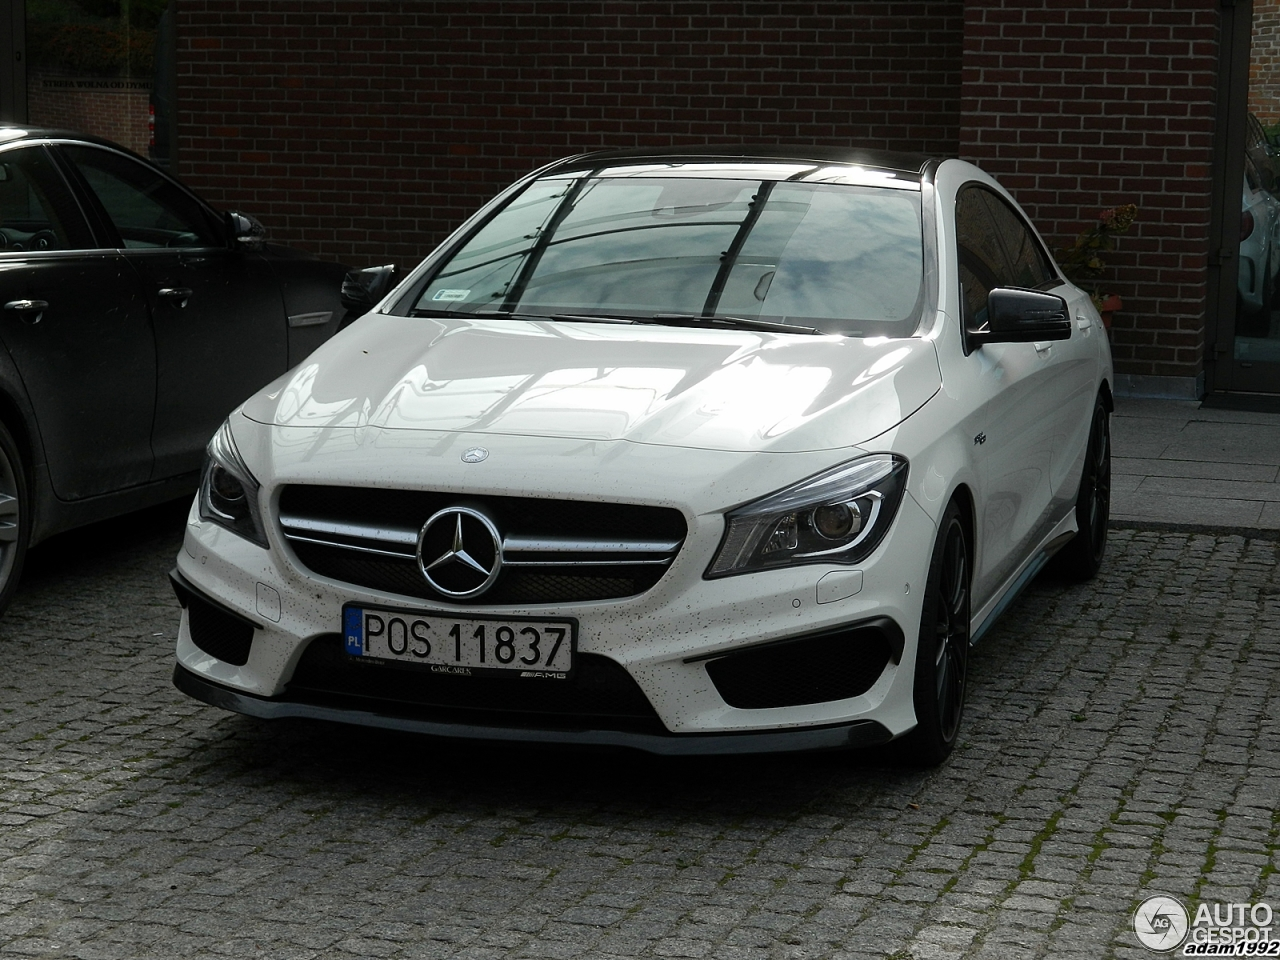 Mercedes benz cla 45 amg c117 14 pa dziernik 2014 for 2014 mercedes benz cla 45